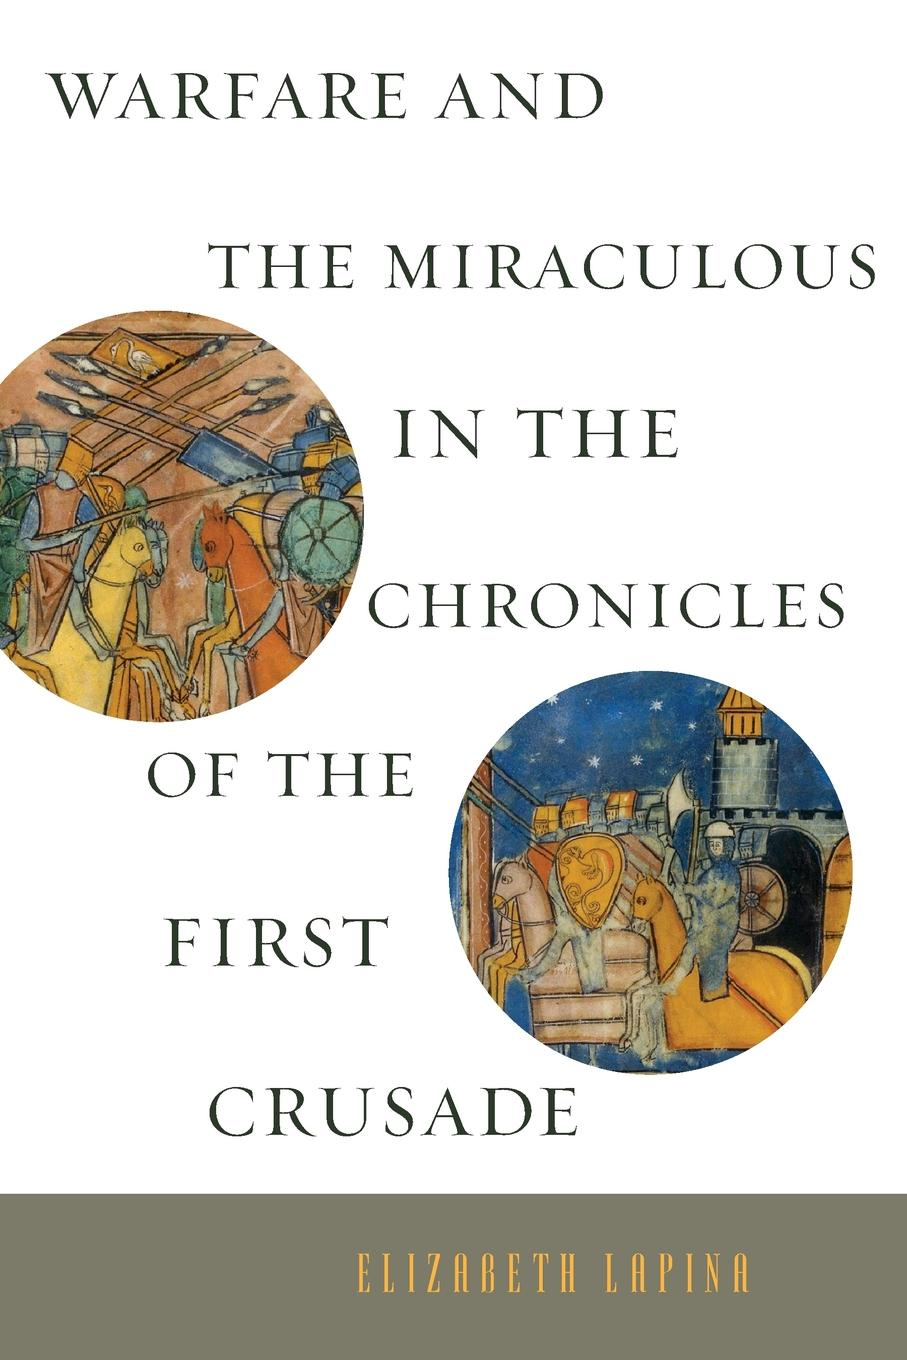 Elizabeth Lapina Warfare and the Miraculous in the Chronicles of the First Crusade the edge chronicles 7 the last of the sky pirates